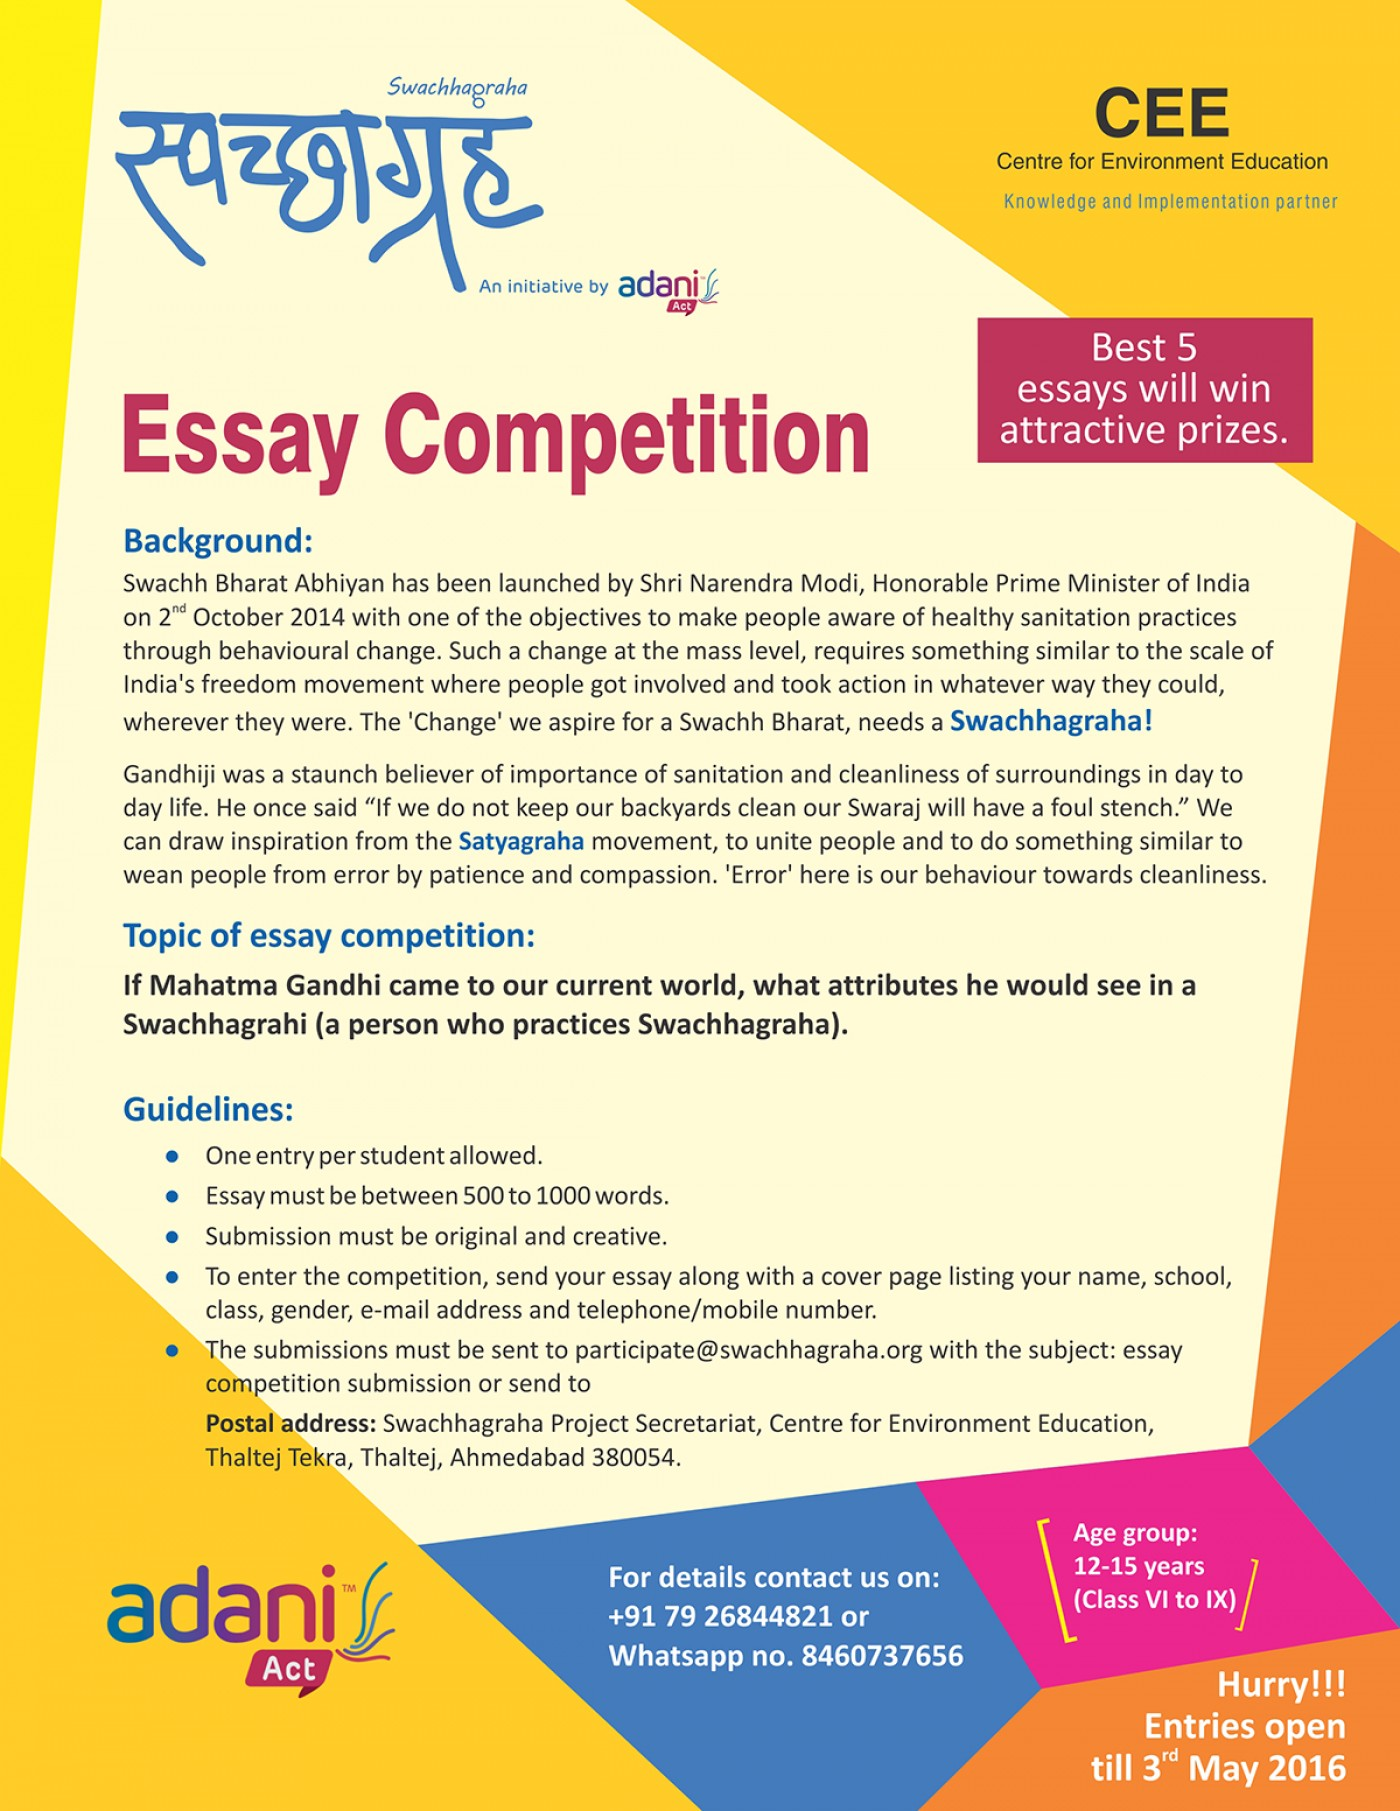 011 20180129171946essay20competition Essay About Cleanliness In School Phenomenal On Premises Persuasive Toilets 1400